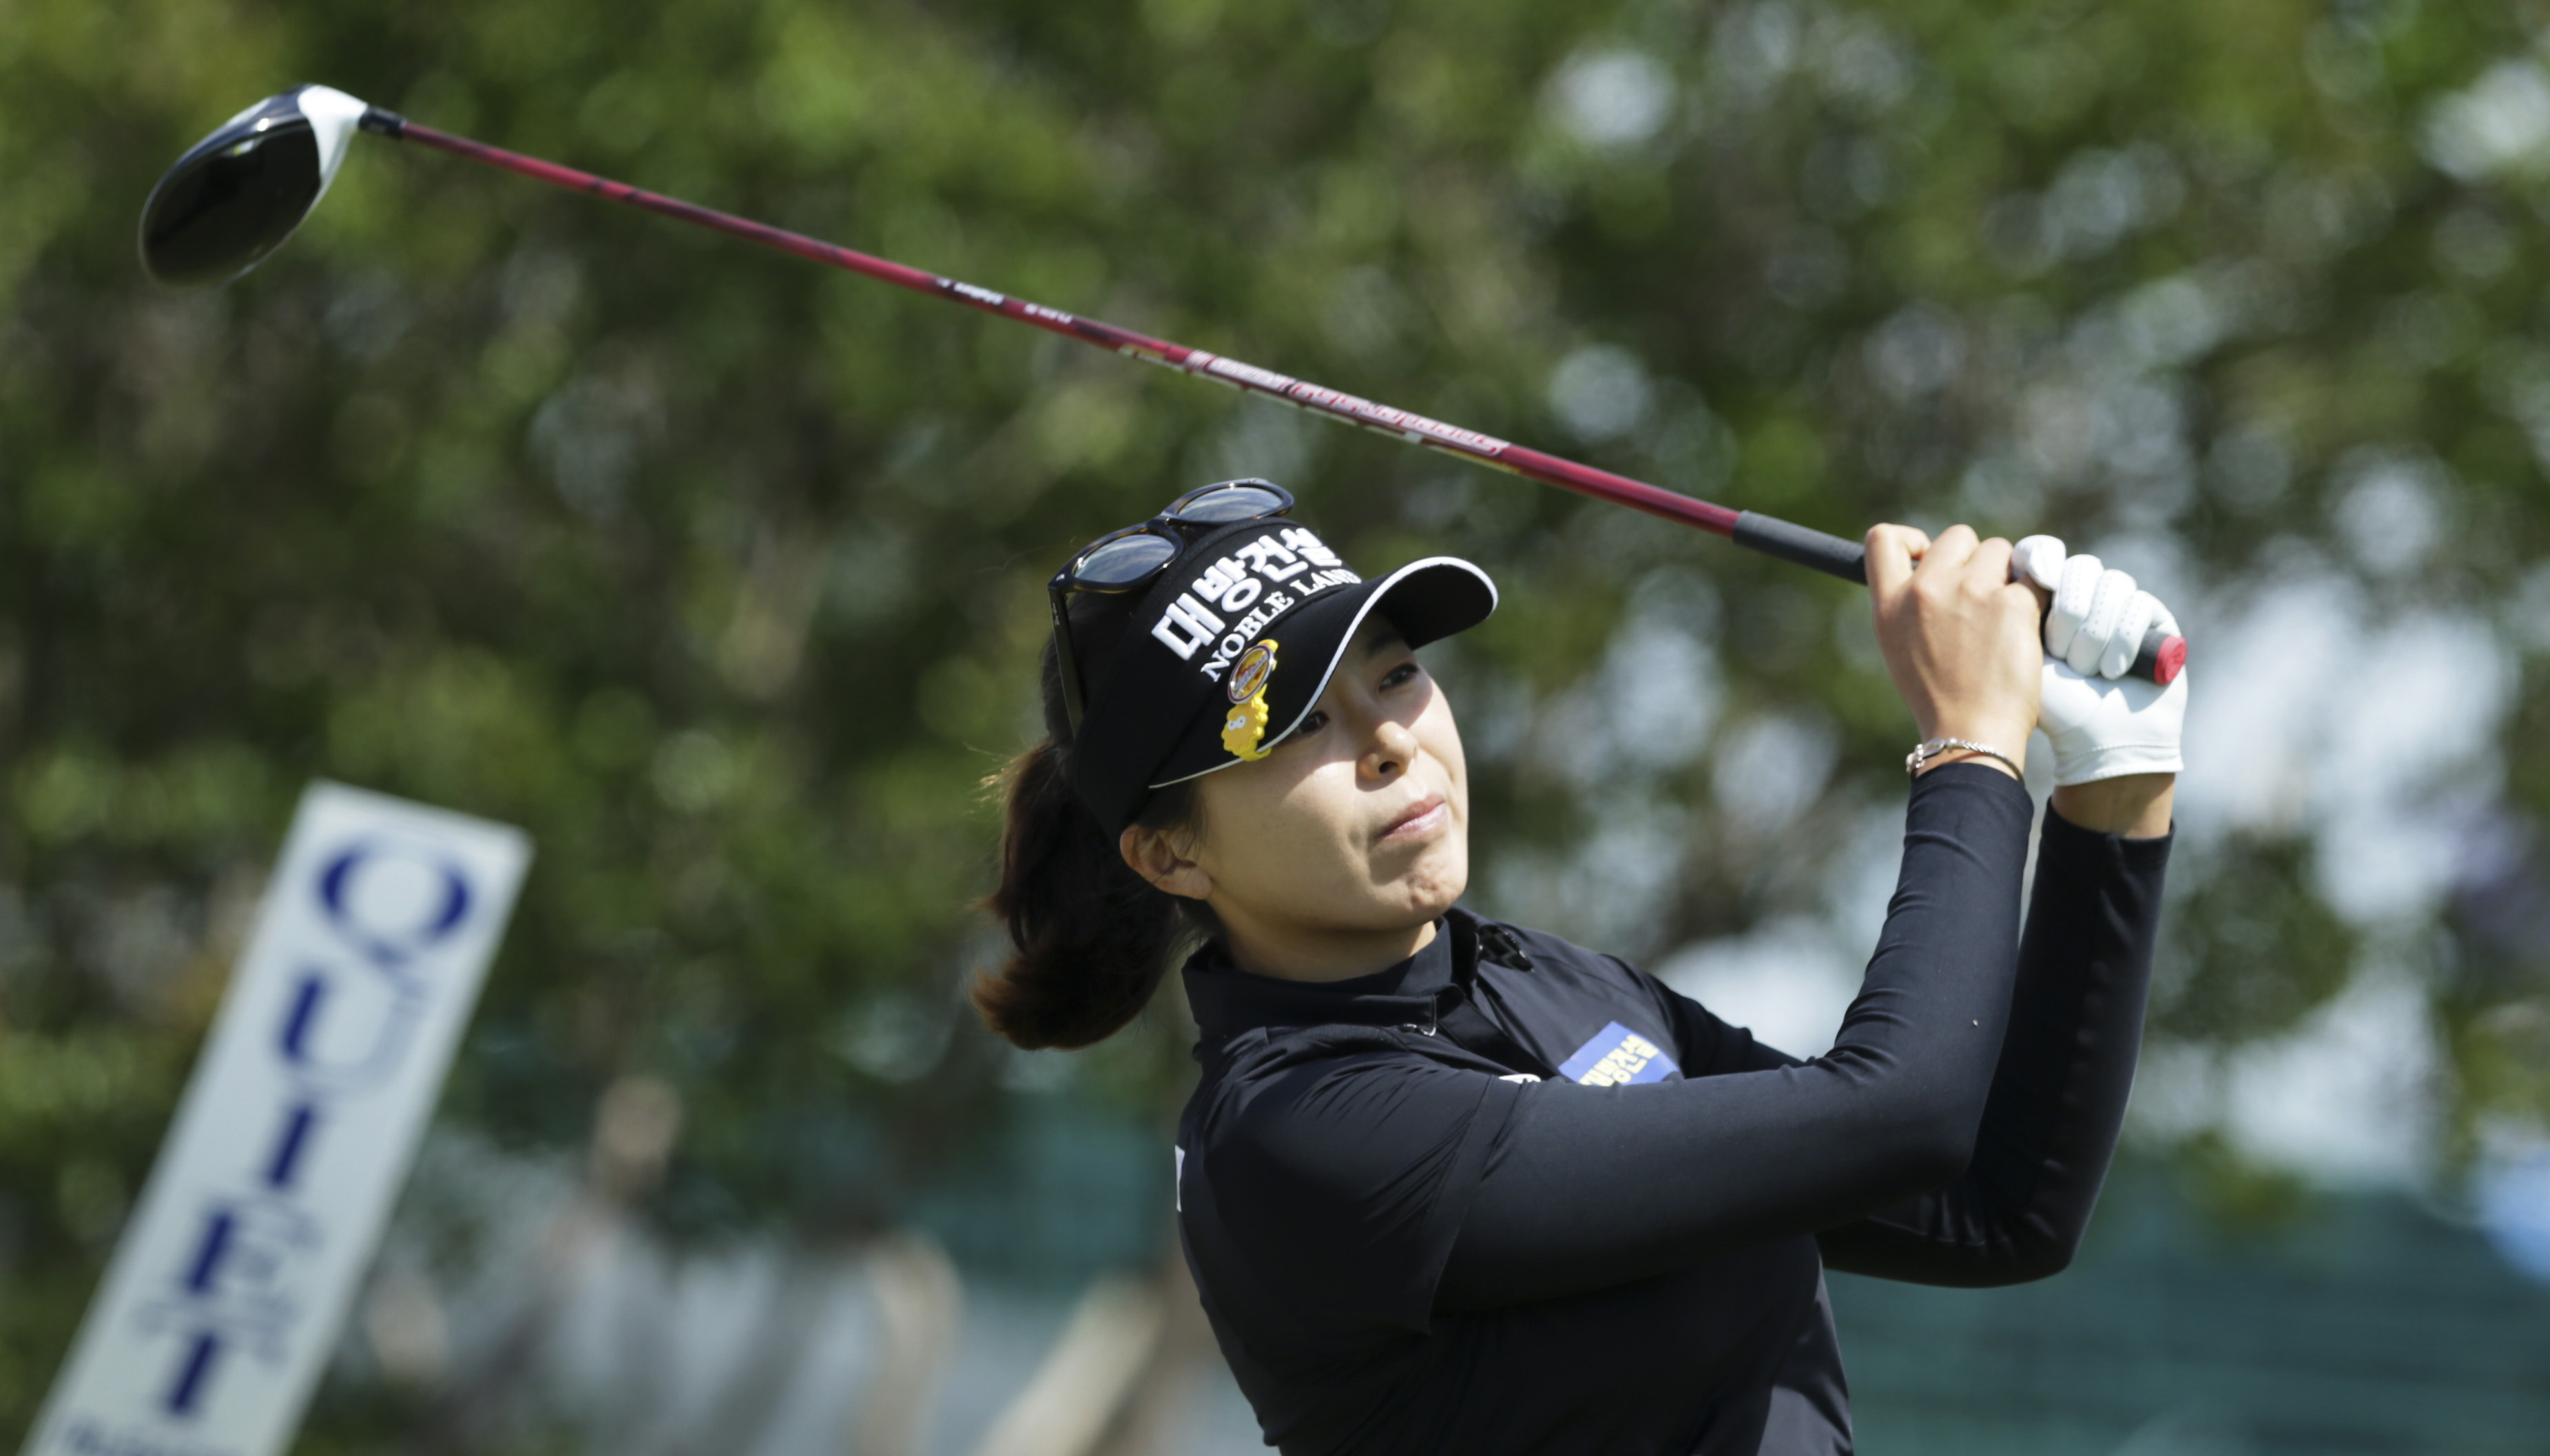 Mi Jung Hur, of South Korea, watches her tee shot on the 10th hole during the LPGA Texas Shootout golf tournament in Irving, Texas, Thursday, April 27, 2017. (AP Photo/LM Otero)